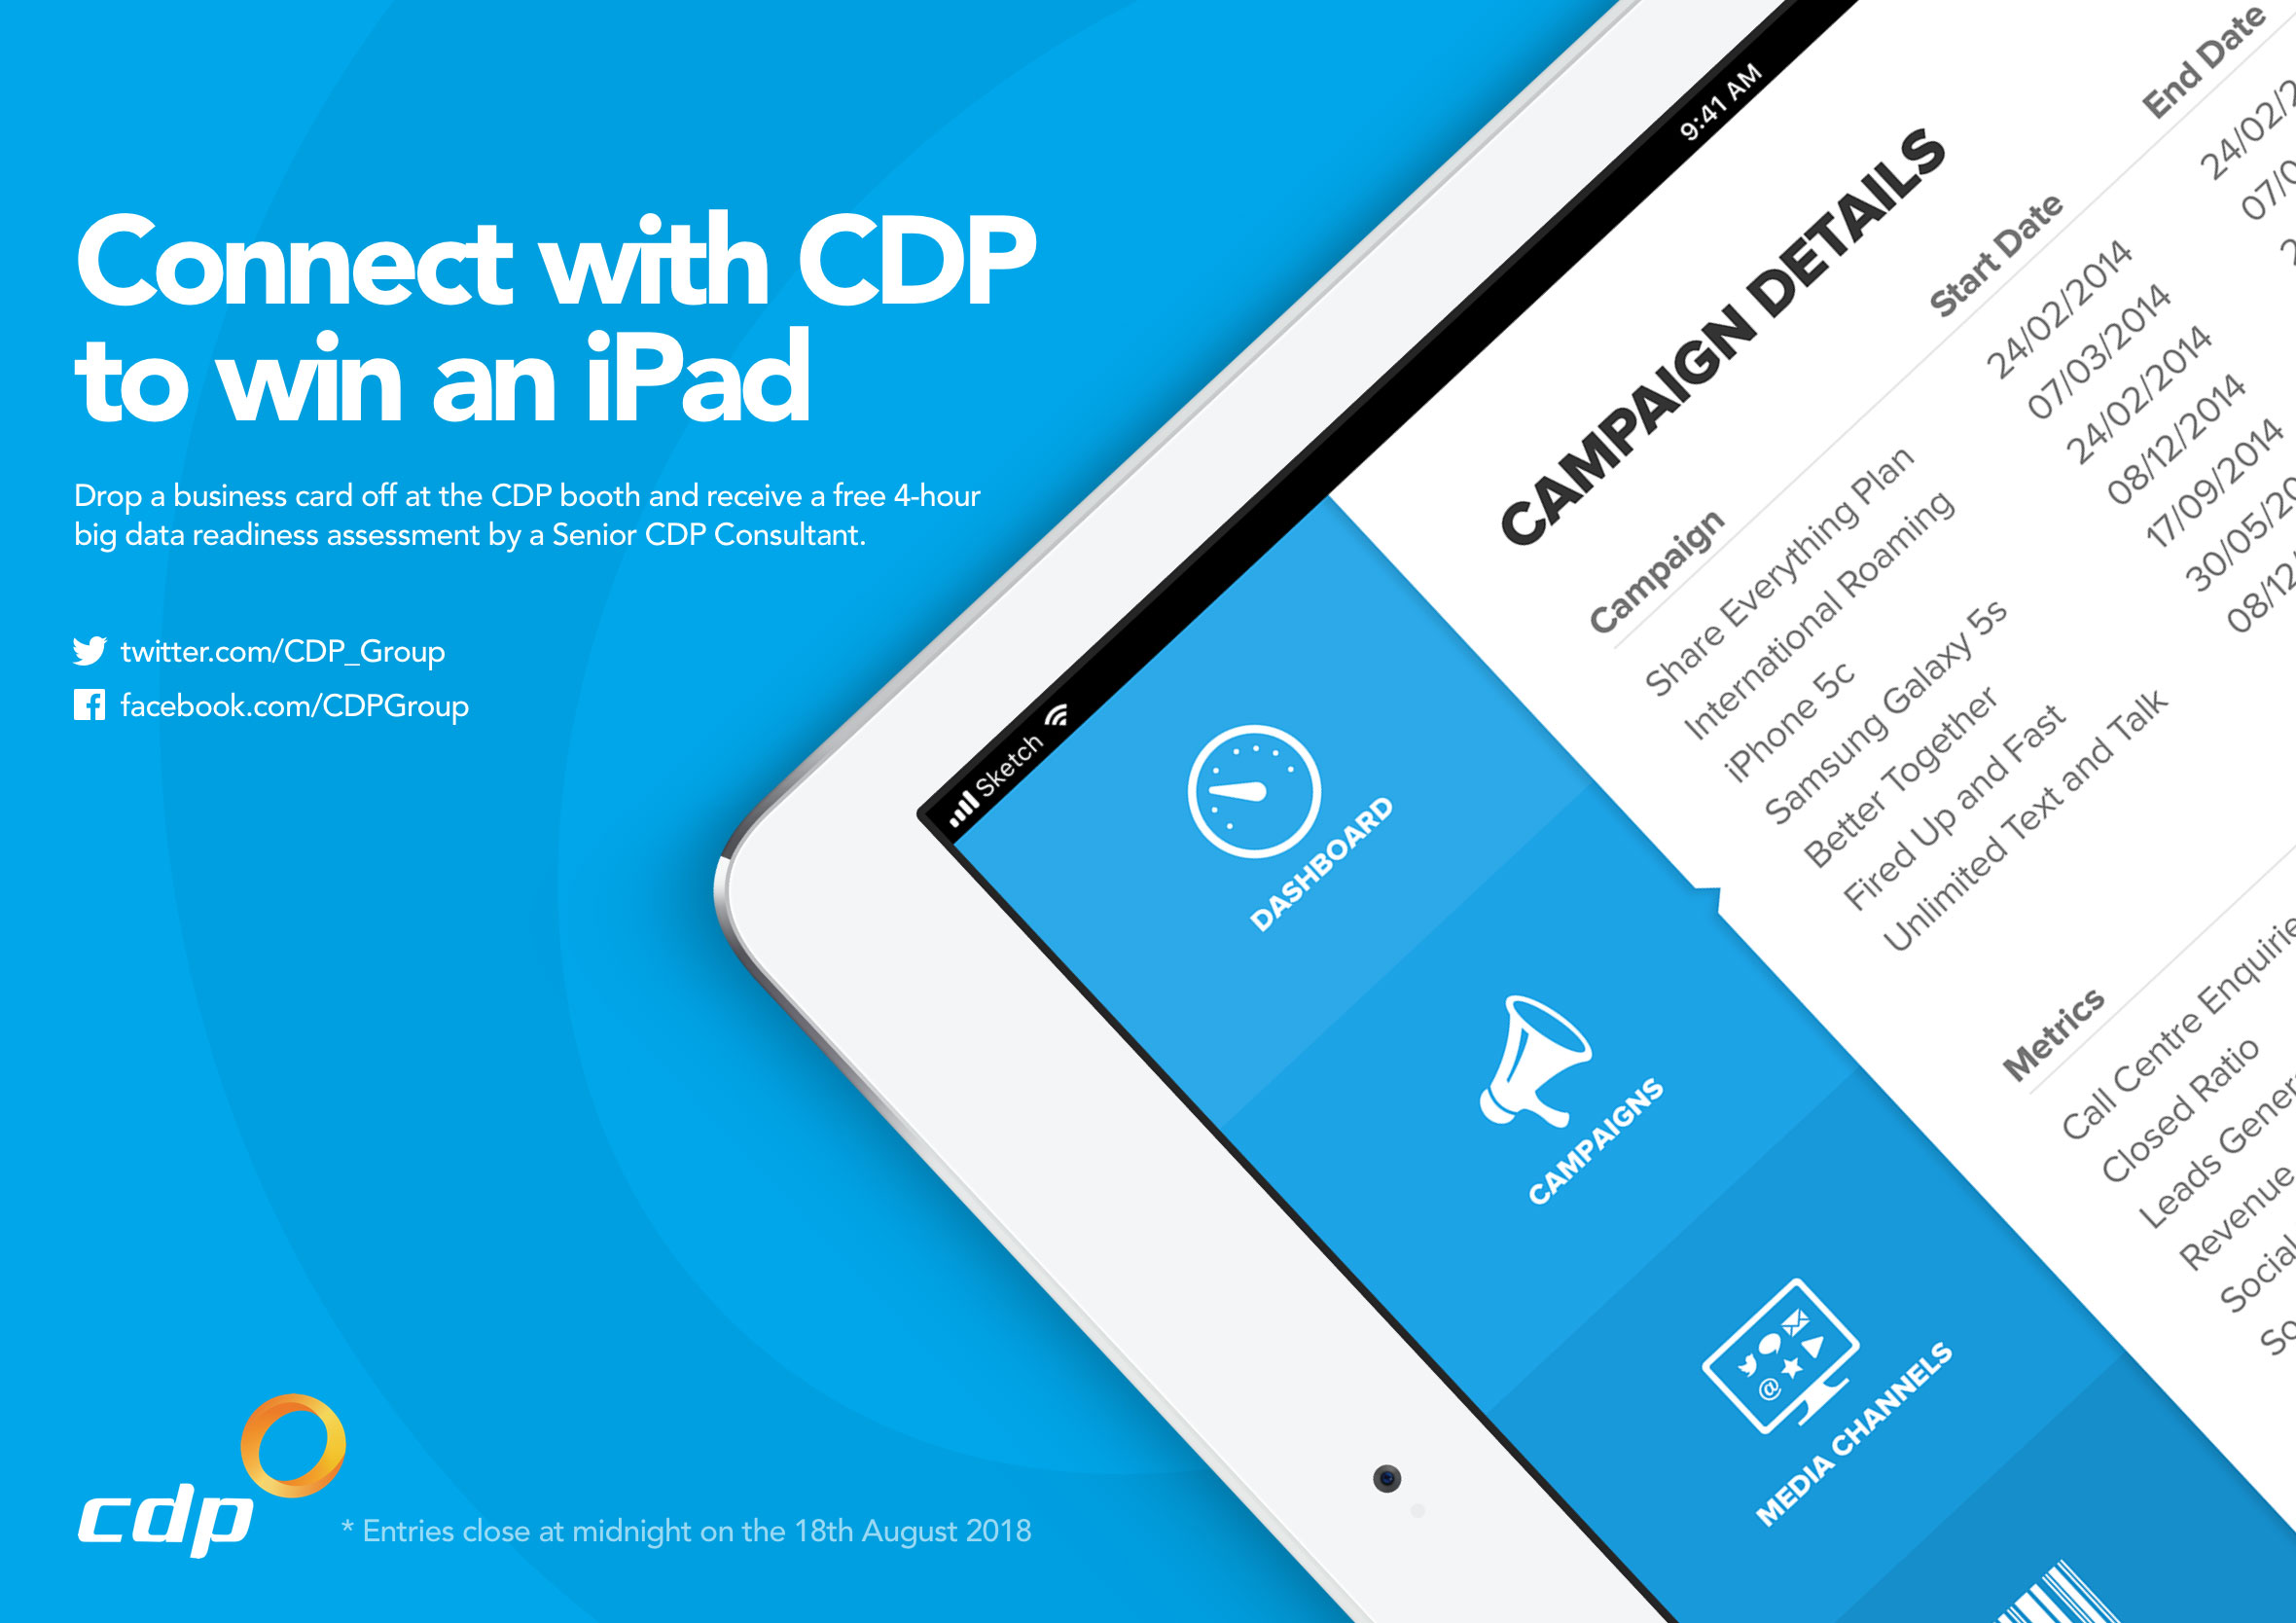 CDP executive lunch invitation lunch and learn - win an iPad